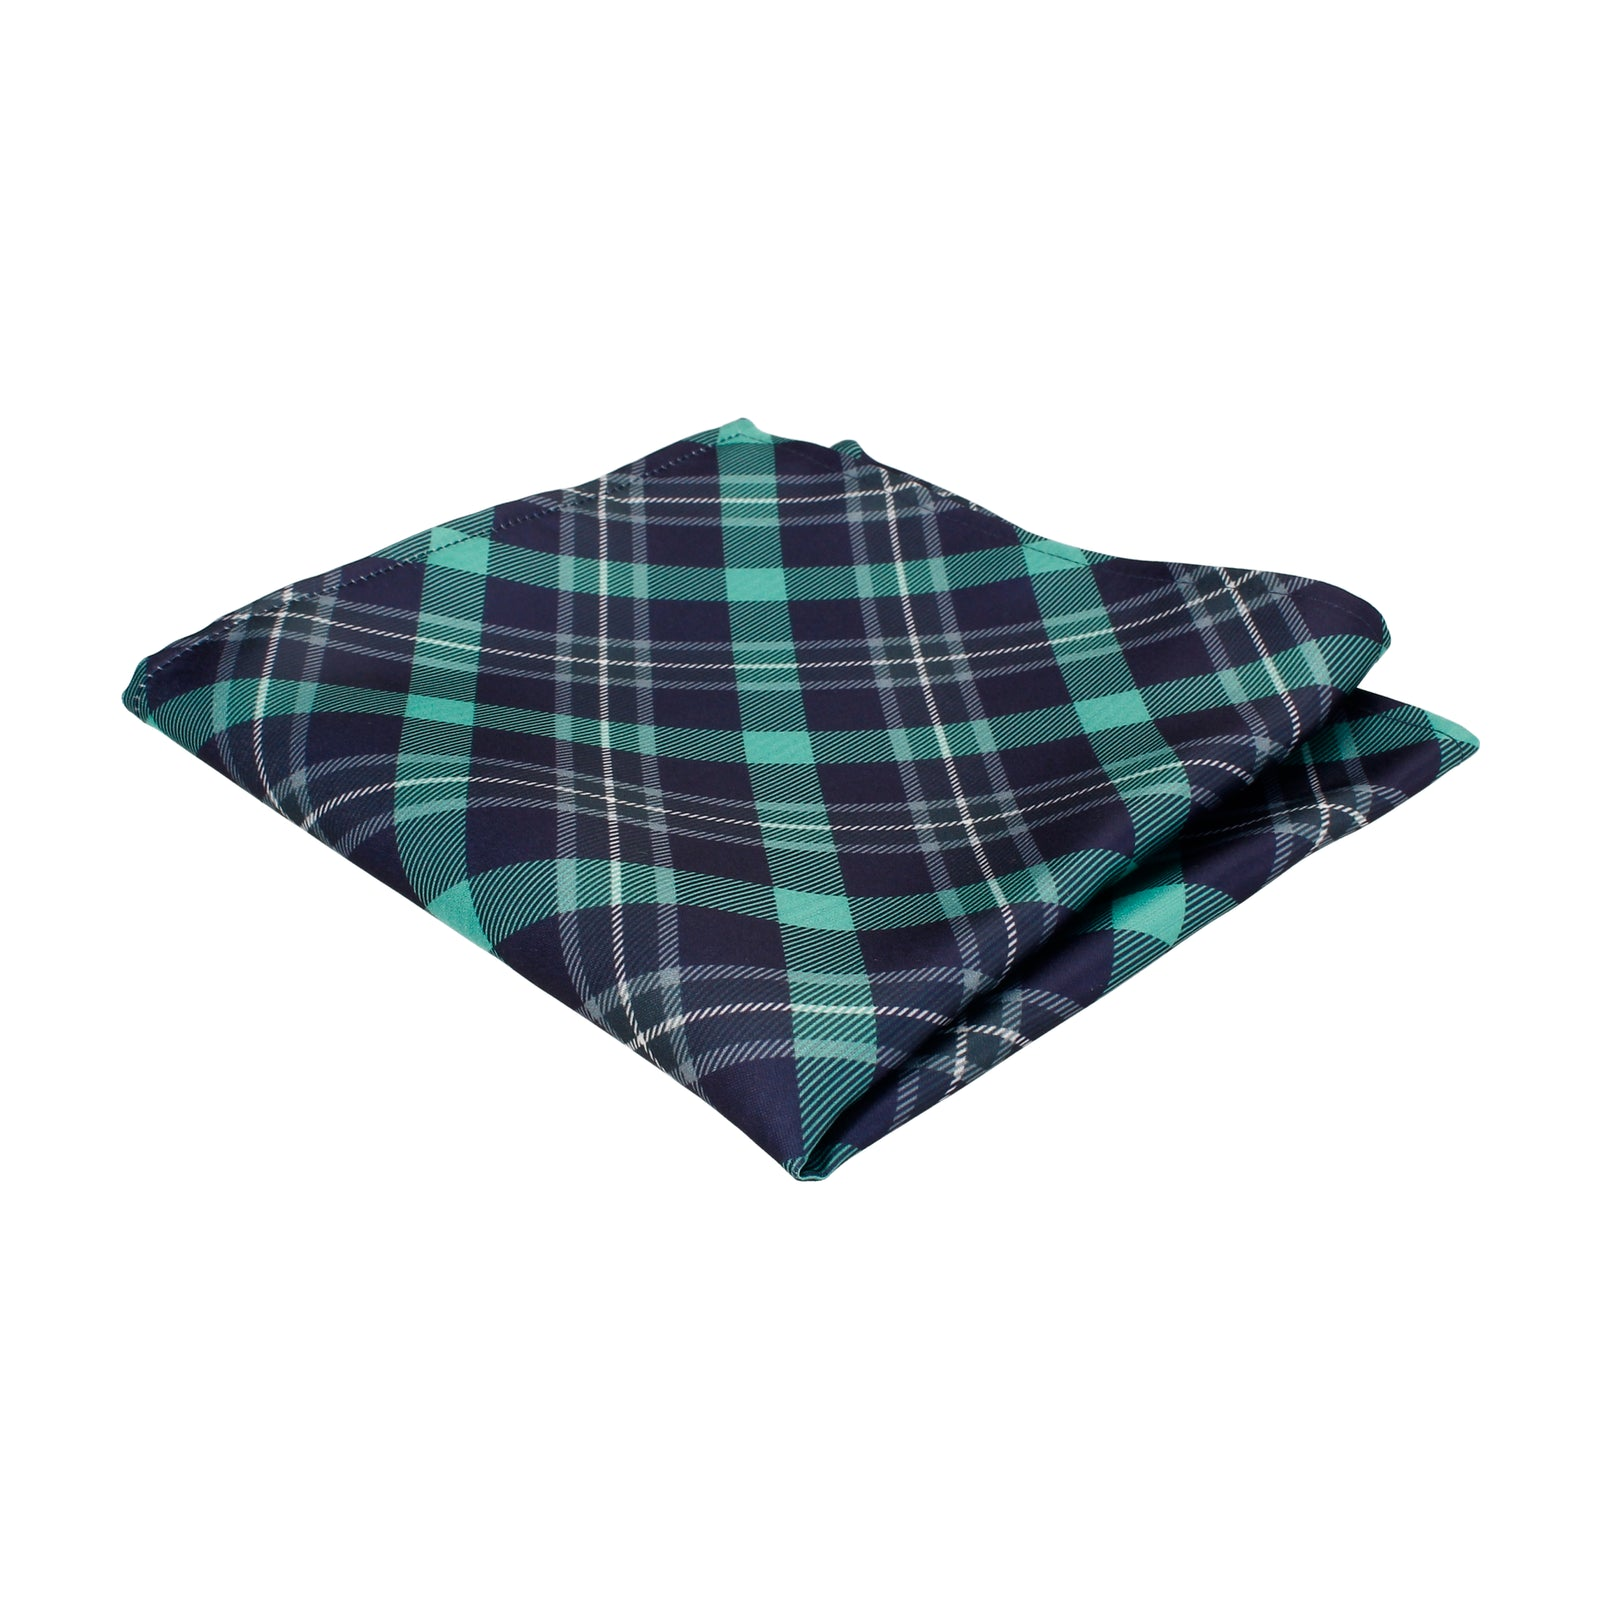 McEwen in Green Pocket Square